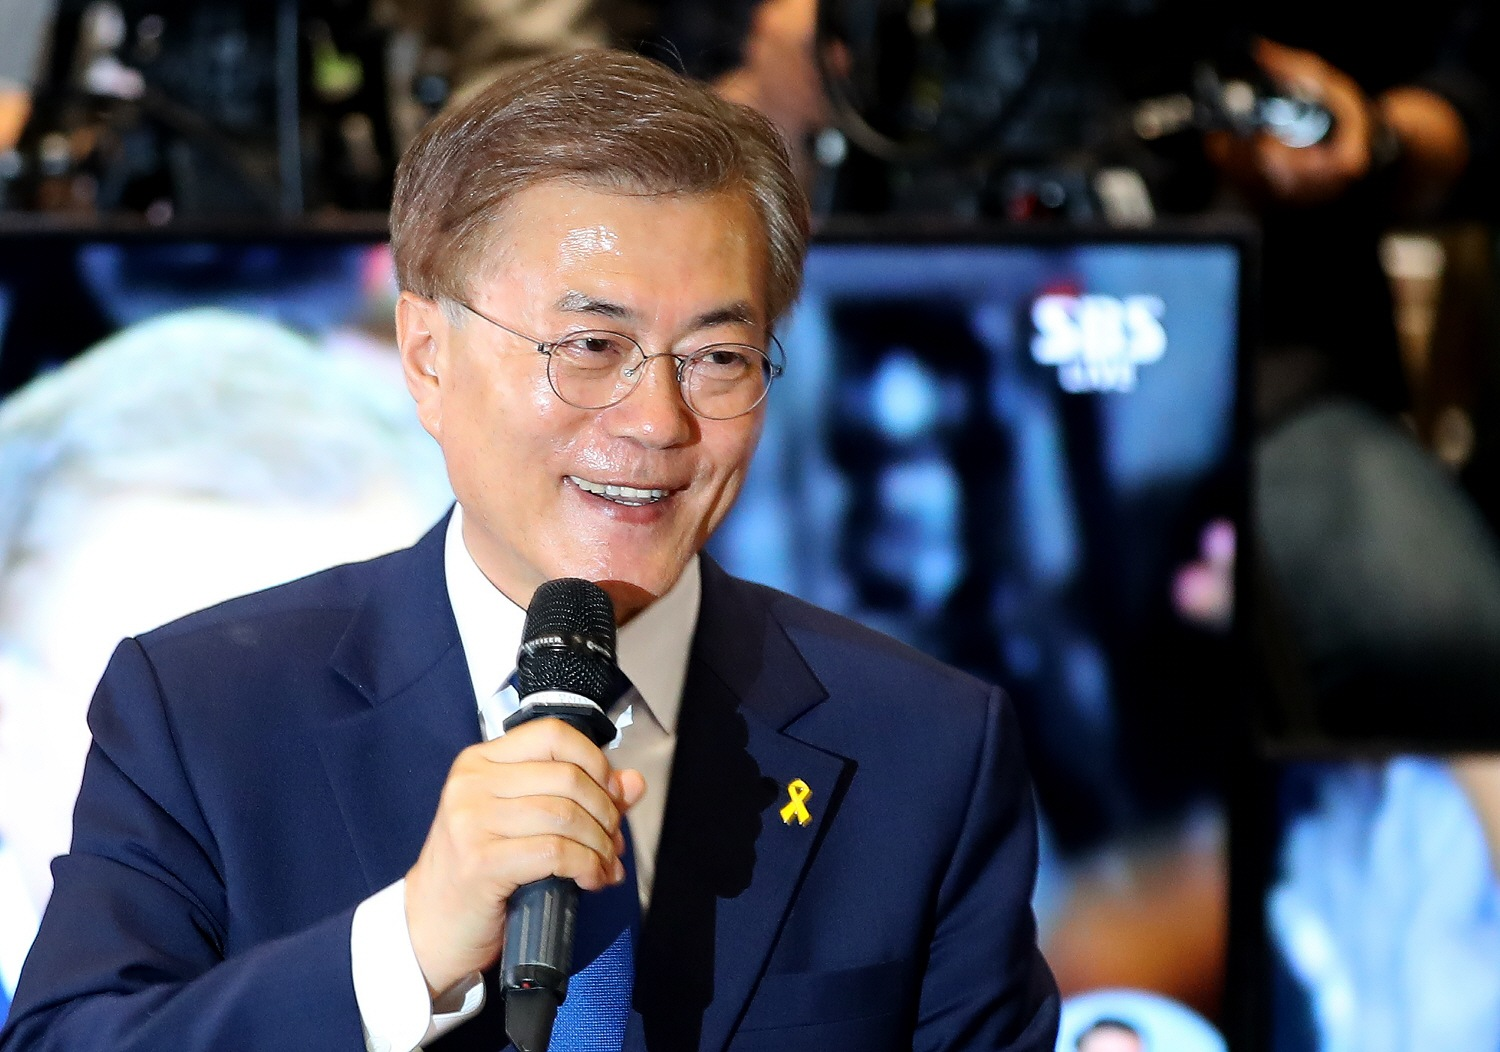 the south korean president is among the top 10 best